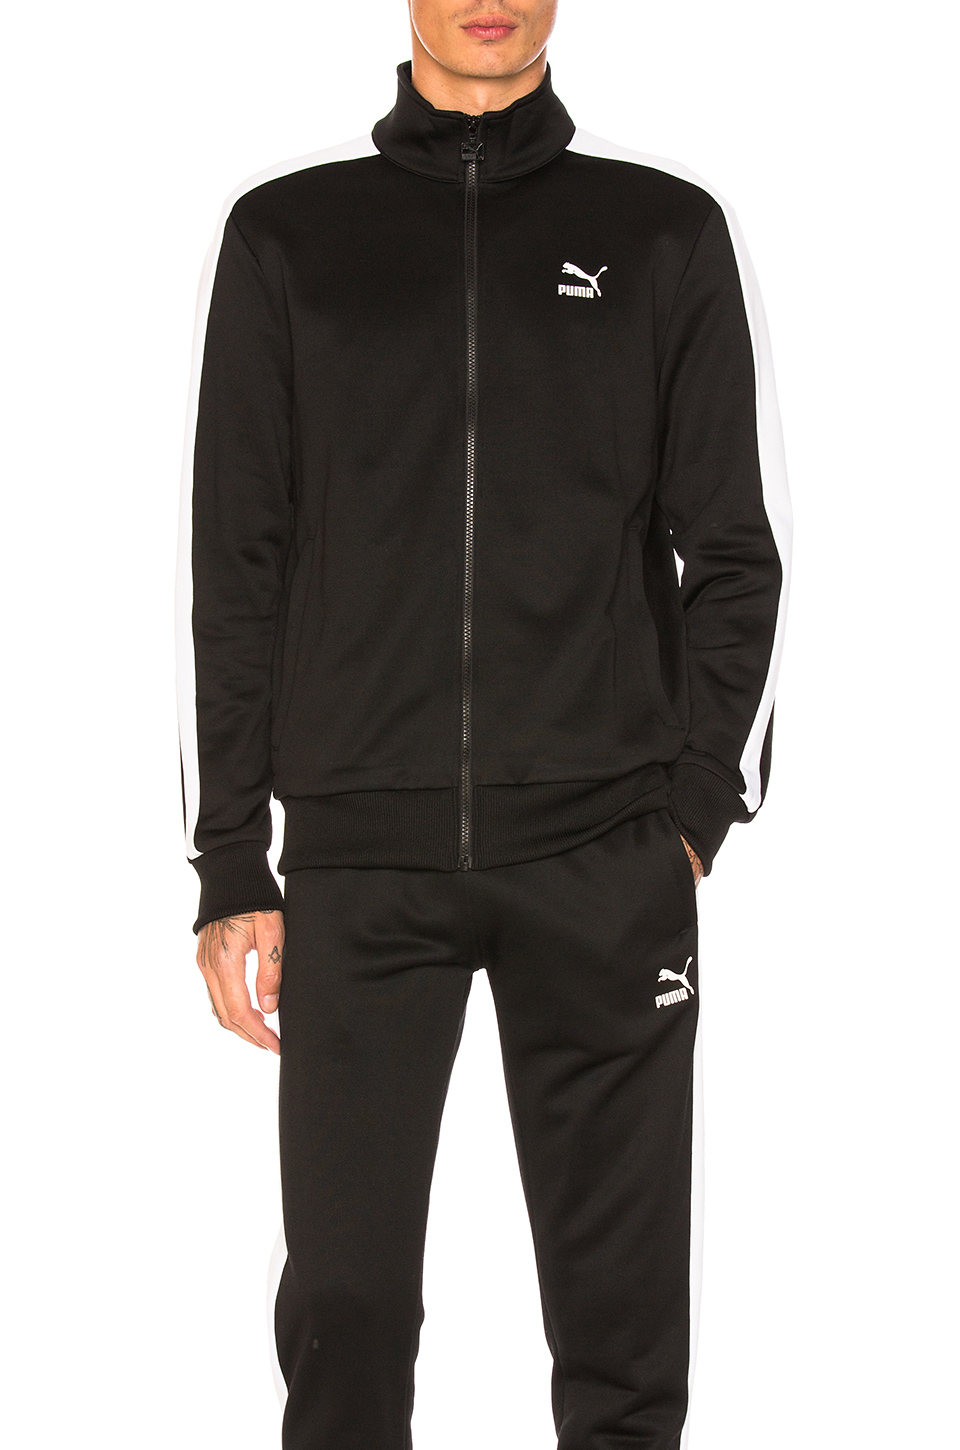 Puma Select Archive T7 Track Jacket in Puma Black